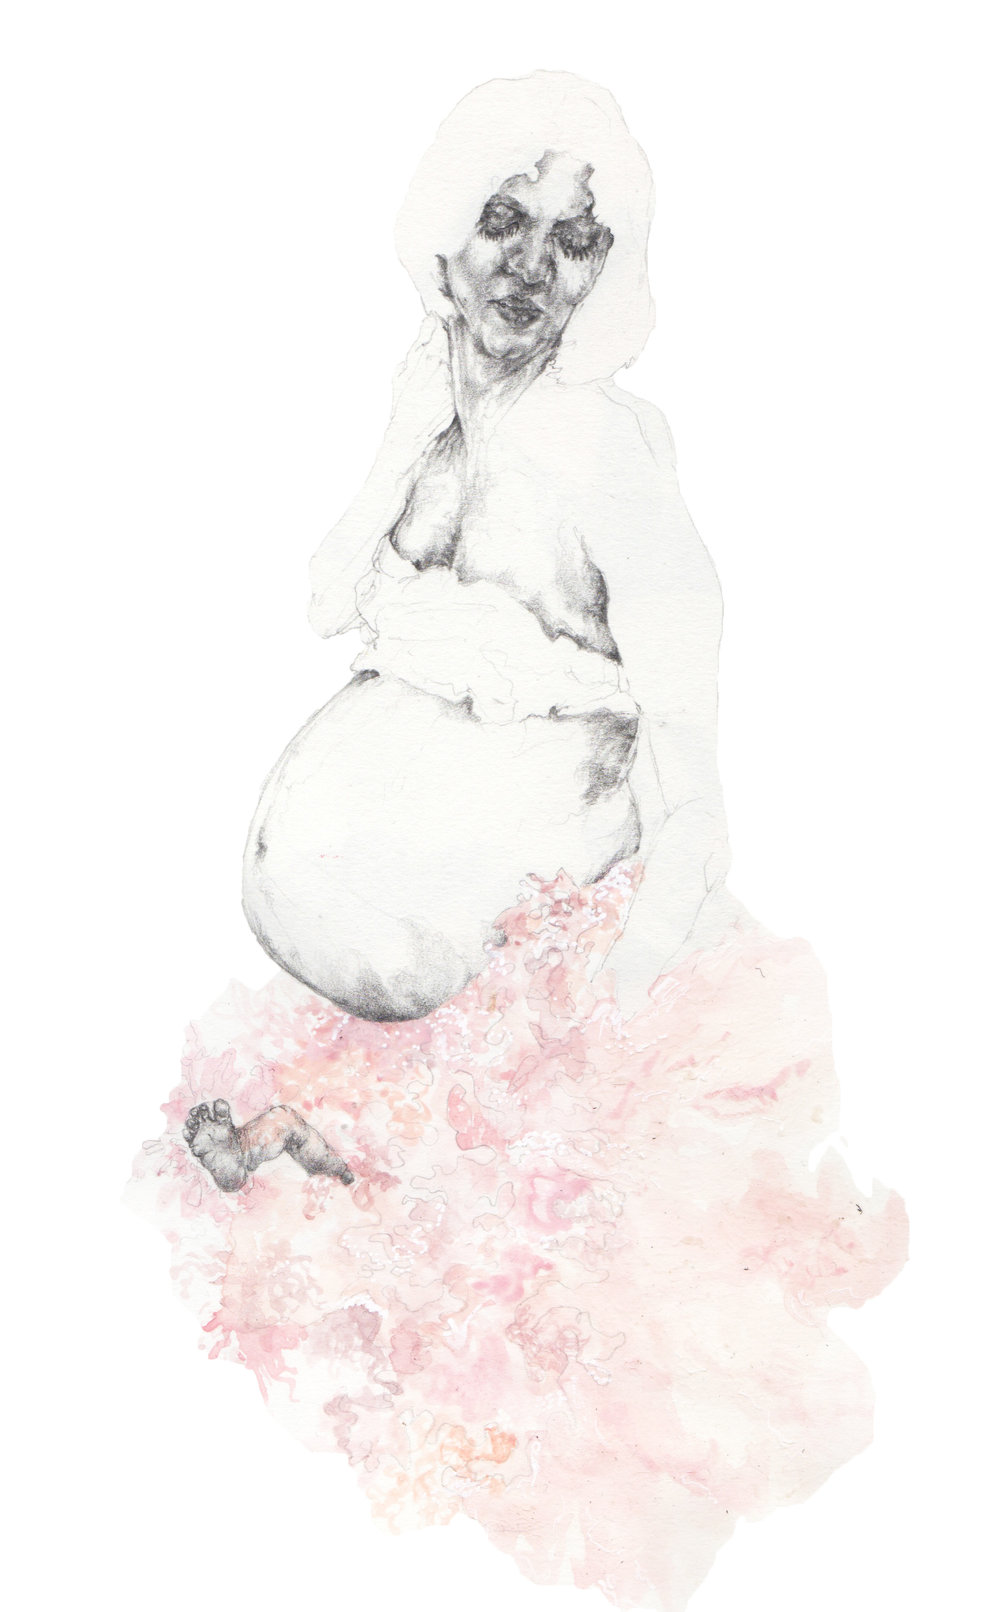 """Fleshy Obsession {Simone Rocha SS16}"" - Pencil & watercolour on heavyweight paper - 20 cm x 30 cm"